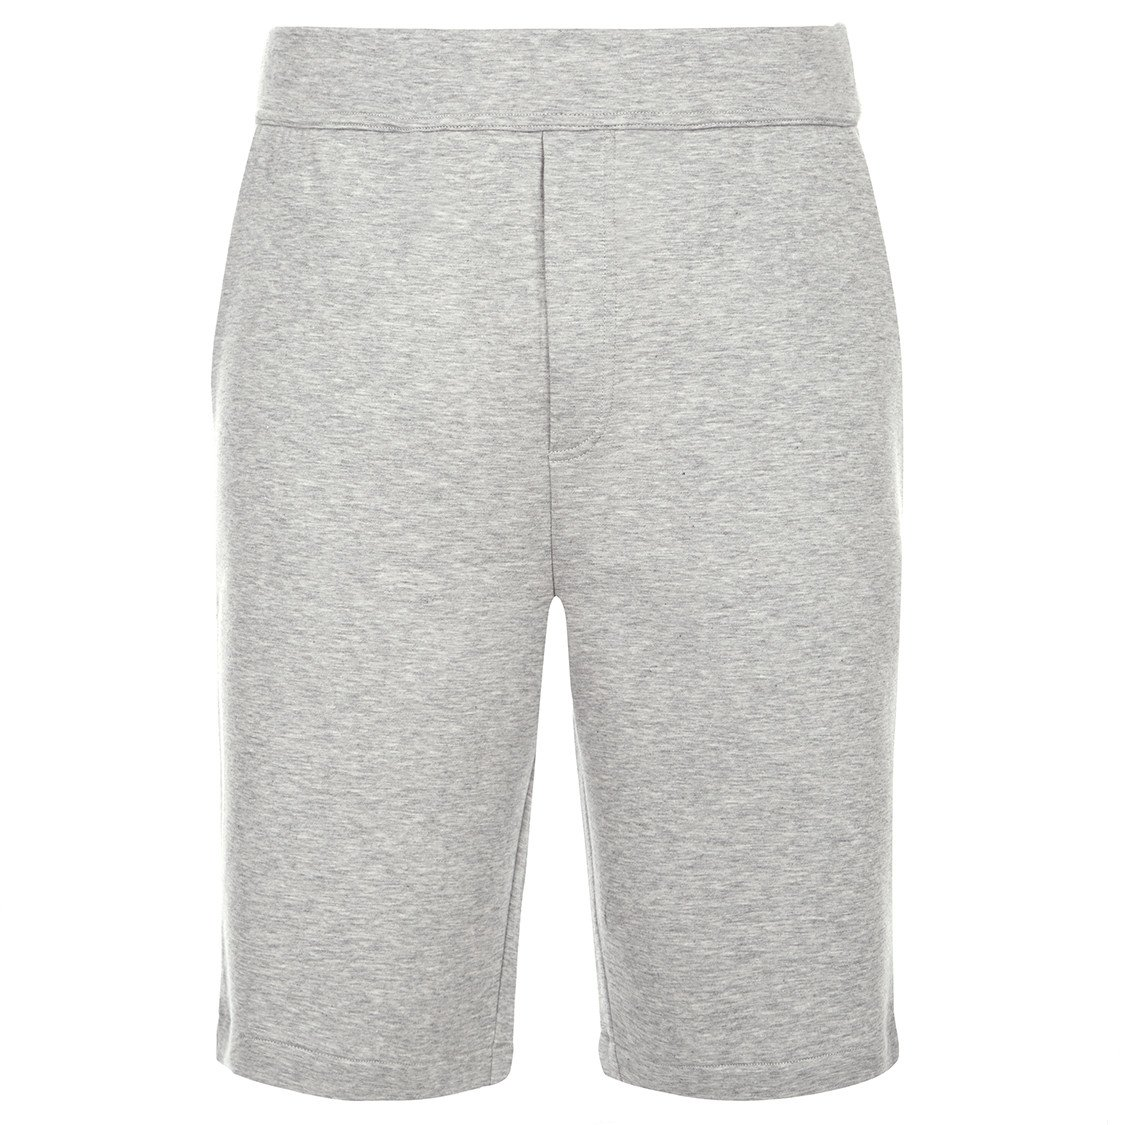 Hamilton & Hare Grey Spacer Short